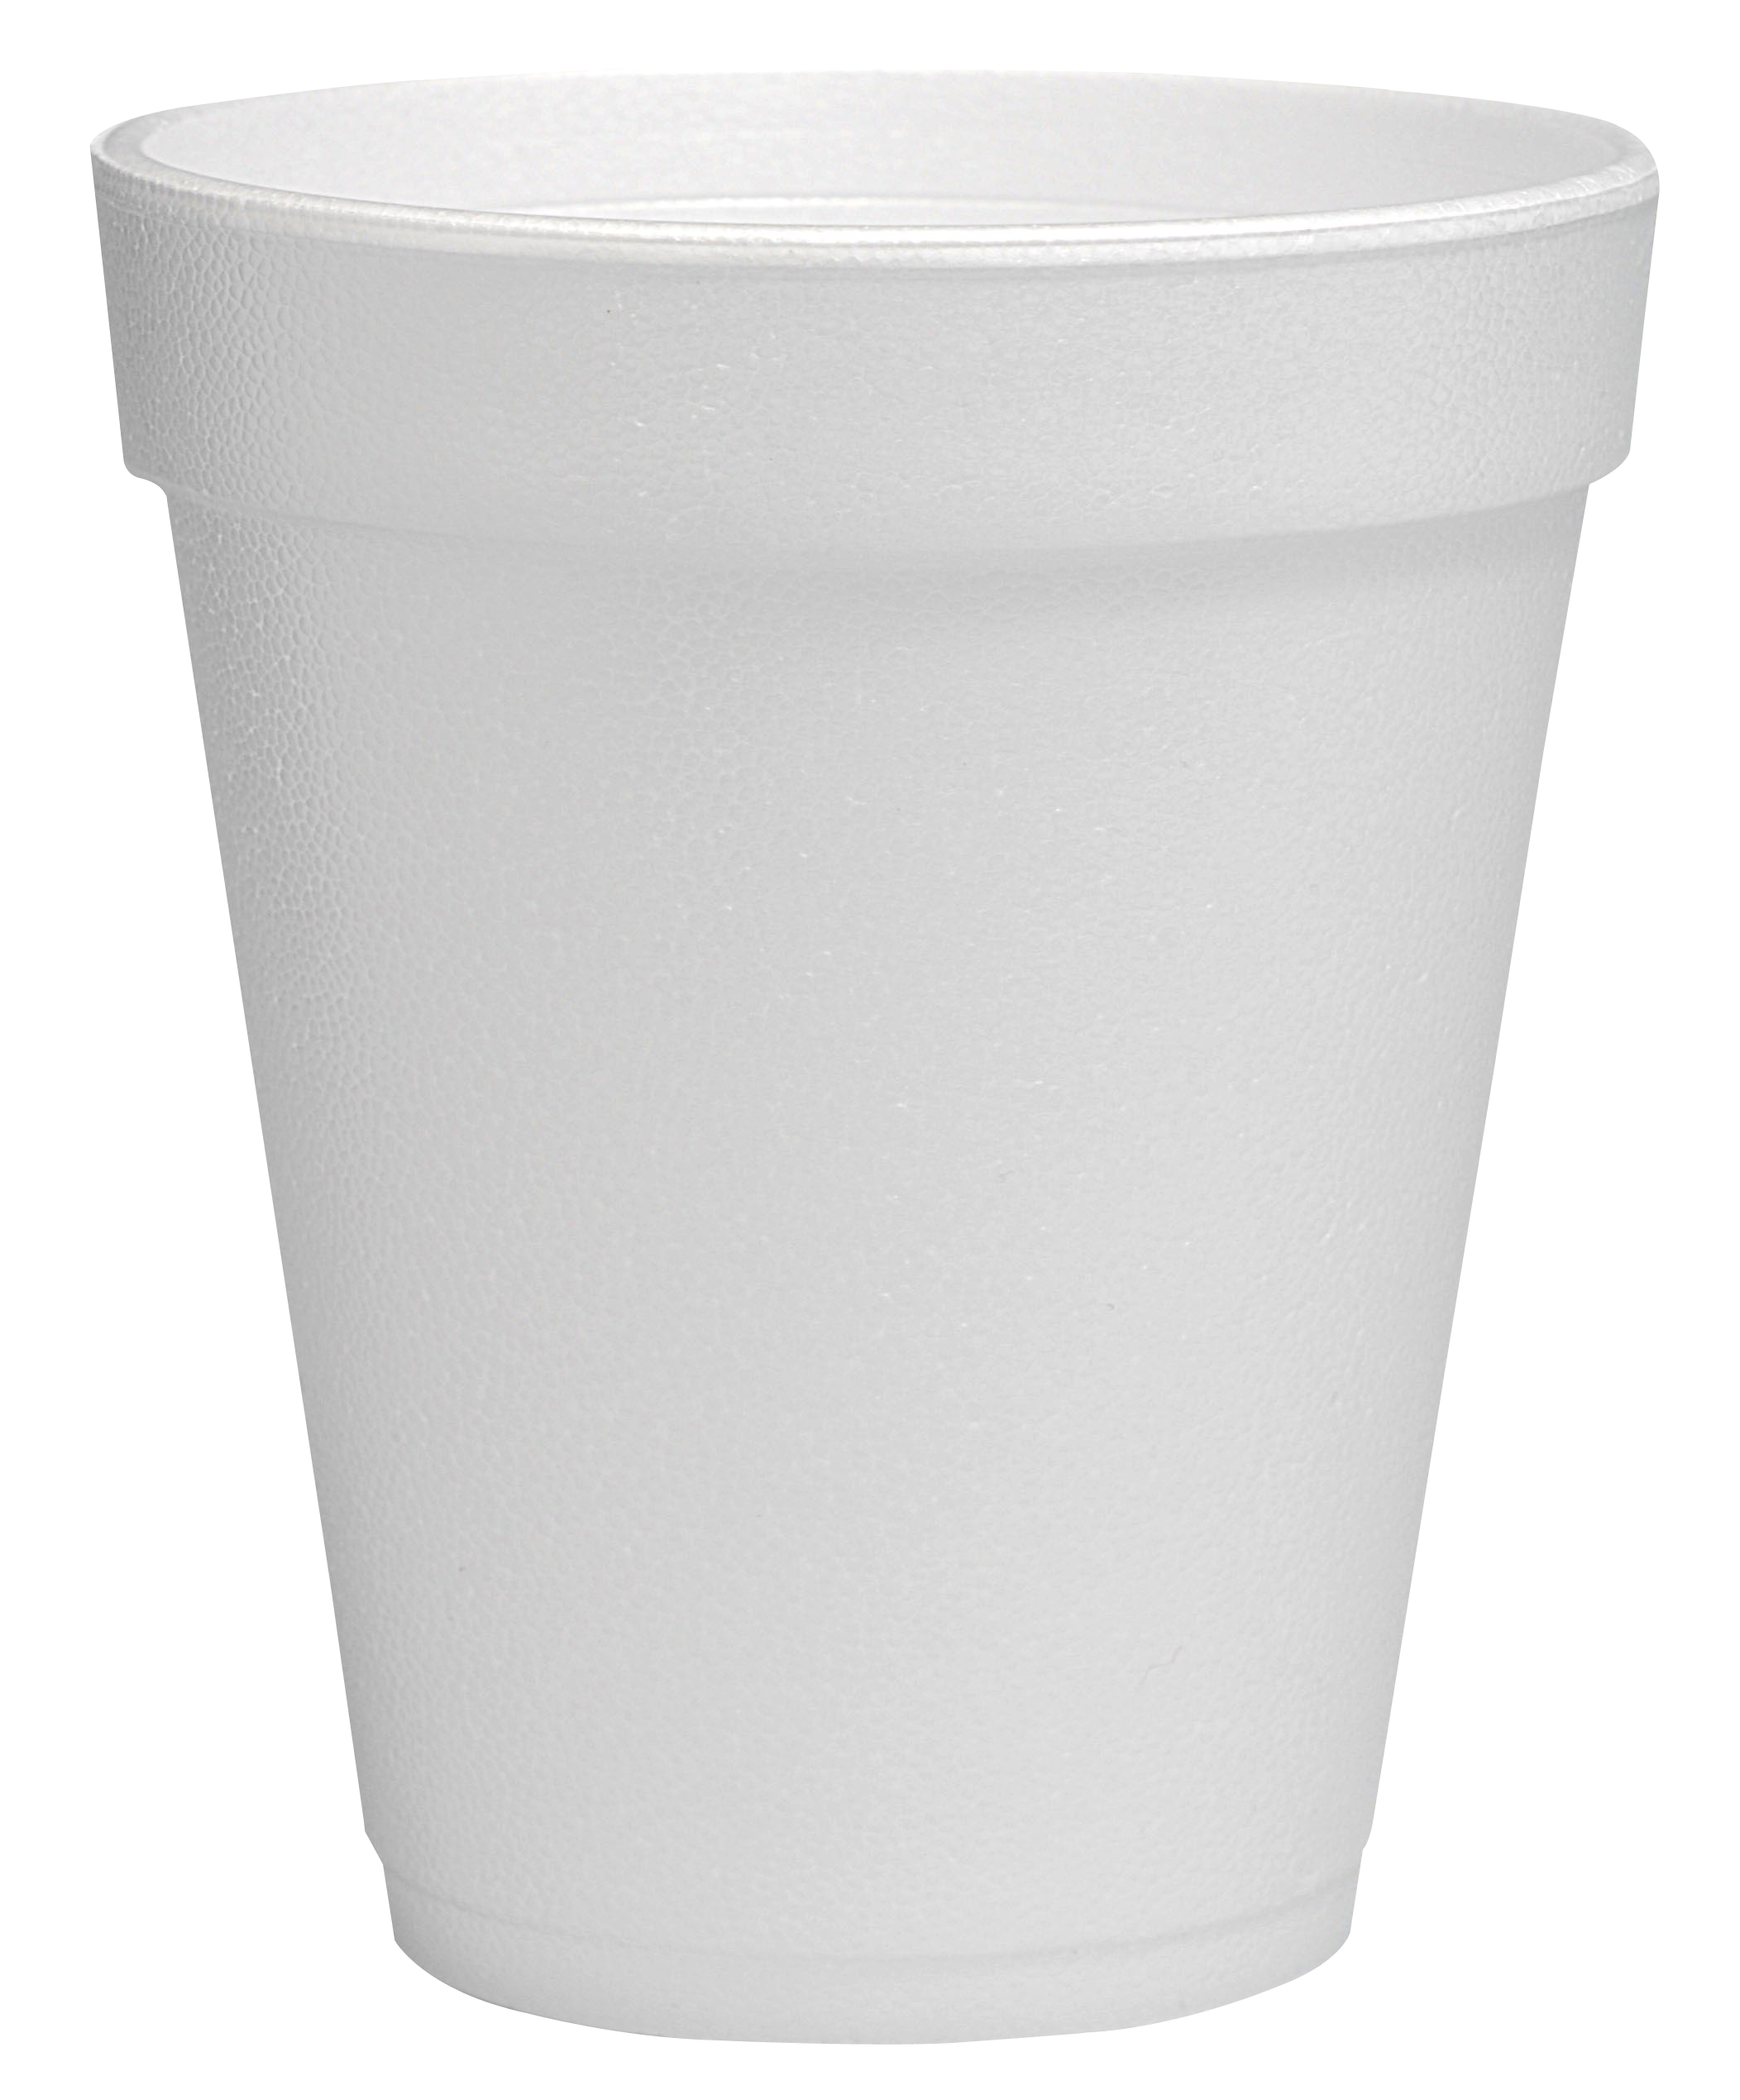 Plastic Cup PNG Image